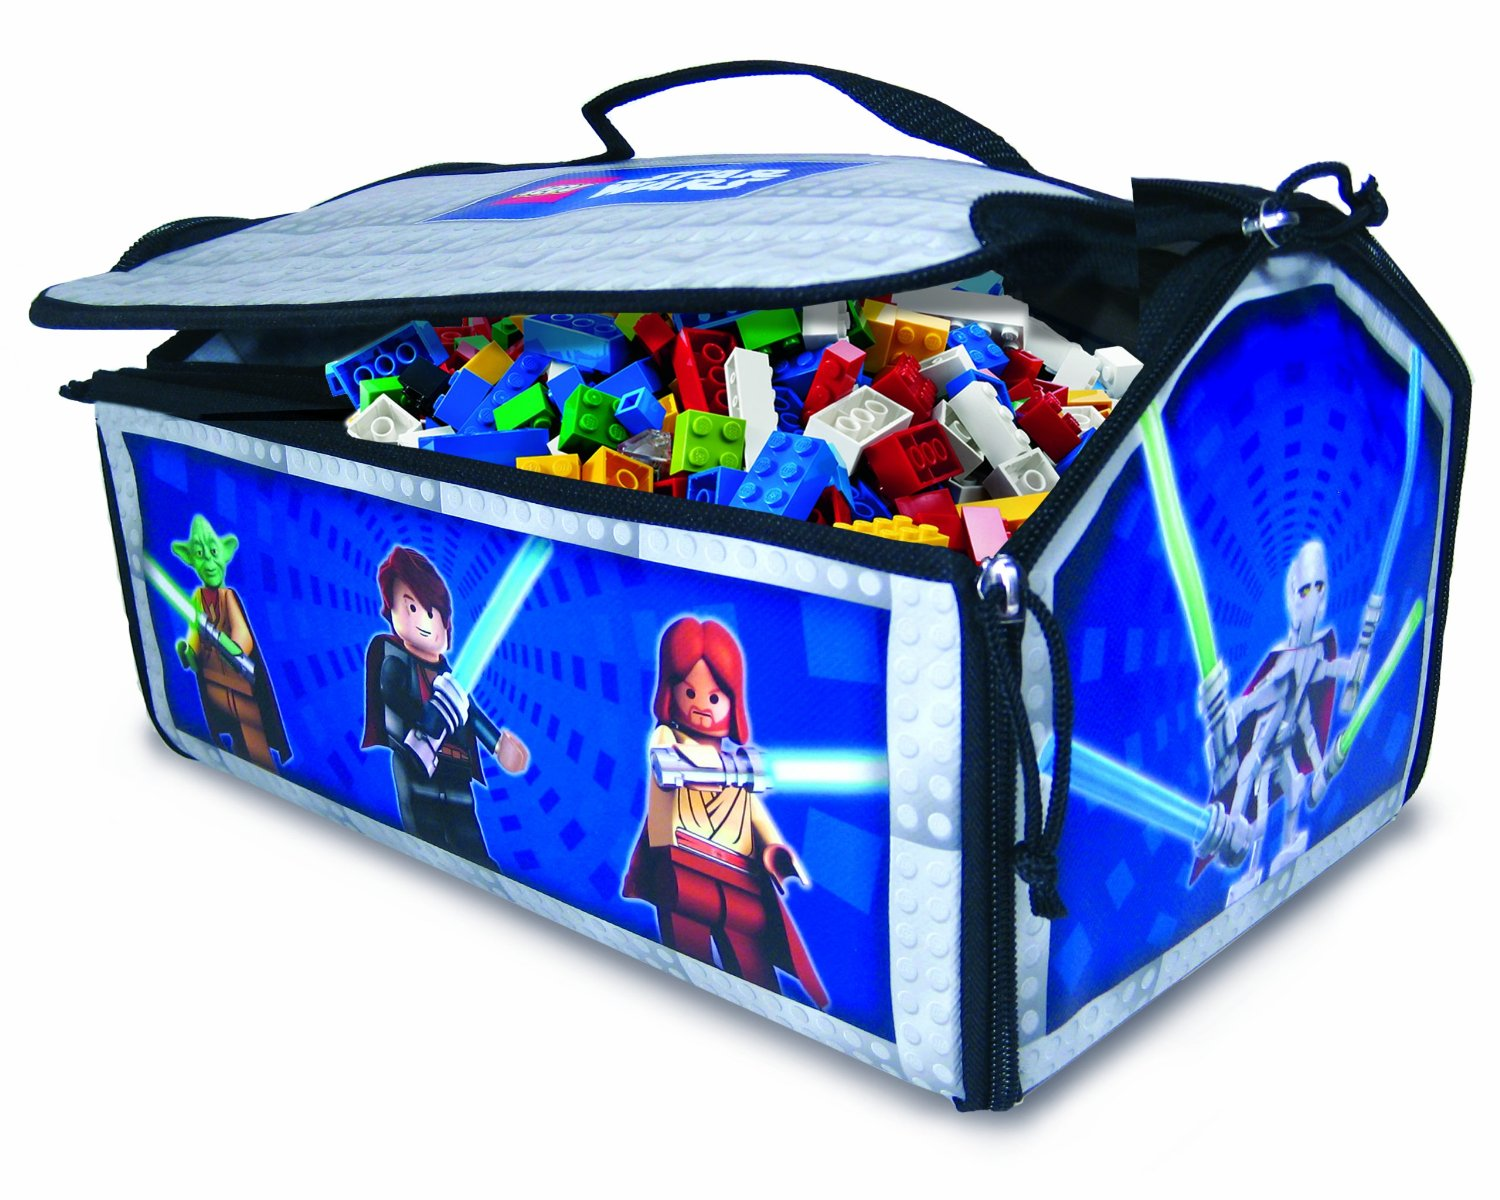 lego storage bin  sc 1 st  Frugal Coupon Living & LEGO Star-Wars Storage Bin and Playmat - $11.97 from $19.97